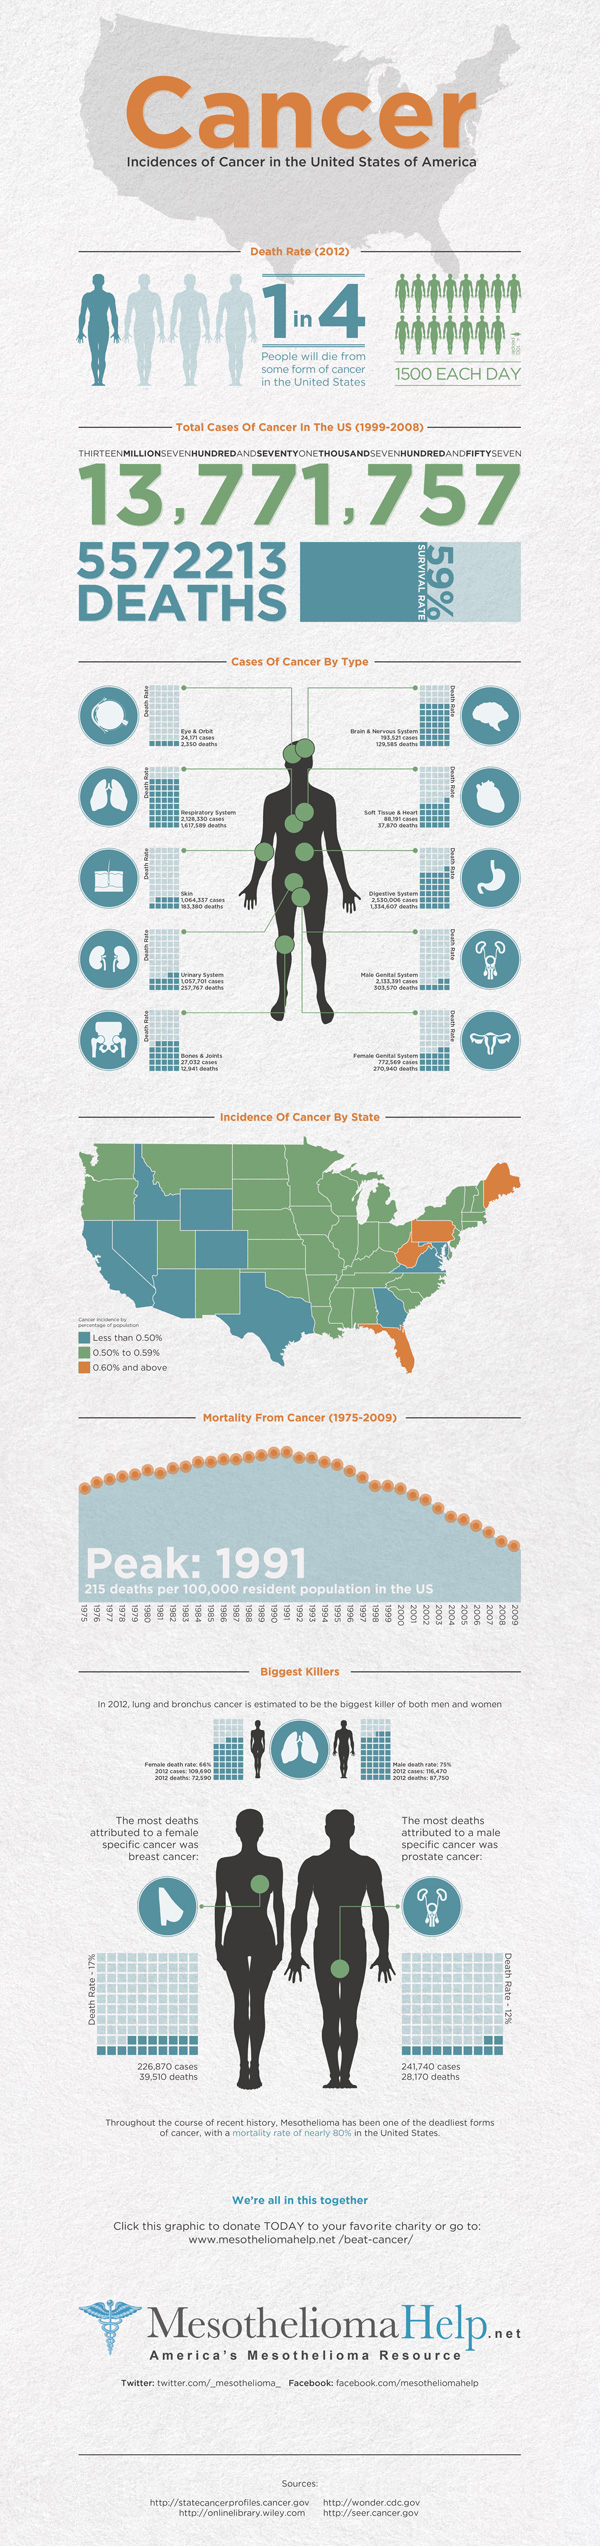 Cancer in the U.S.A. infographic